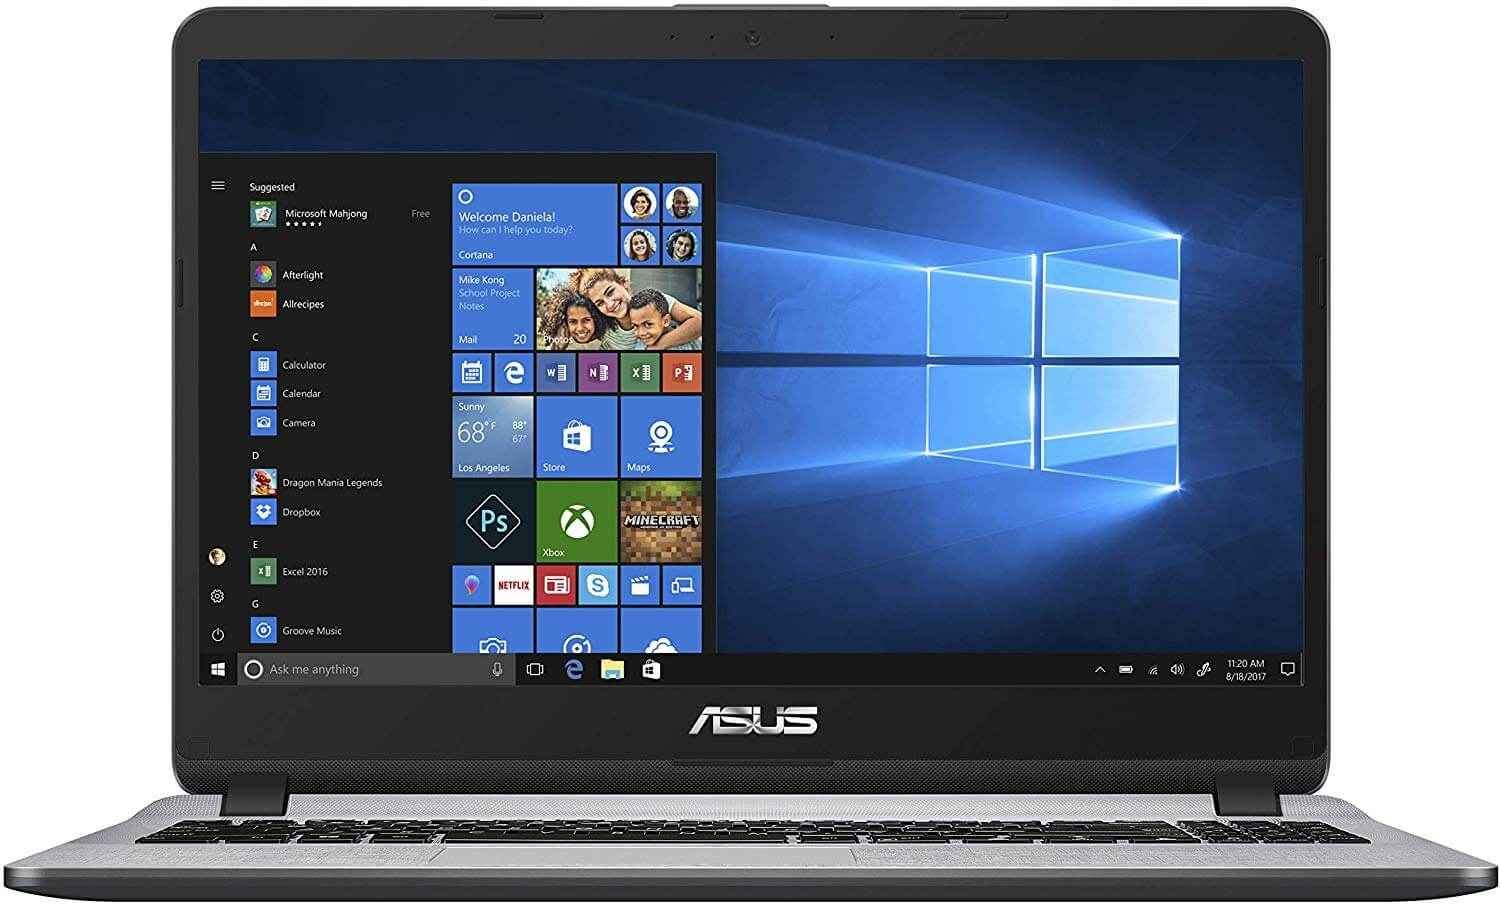 ASUS X507UA Notebook Laptop With 15.6-Inch Display, Core i3 Processor/4GB RAM/1TB HDD/ Intel HD Graphics 520 Grey